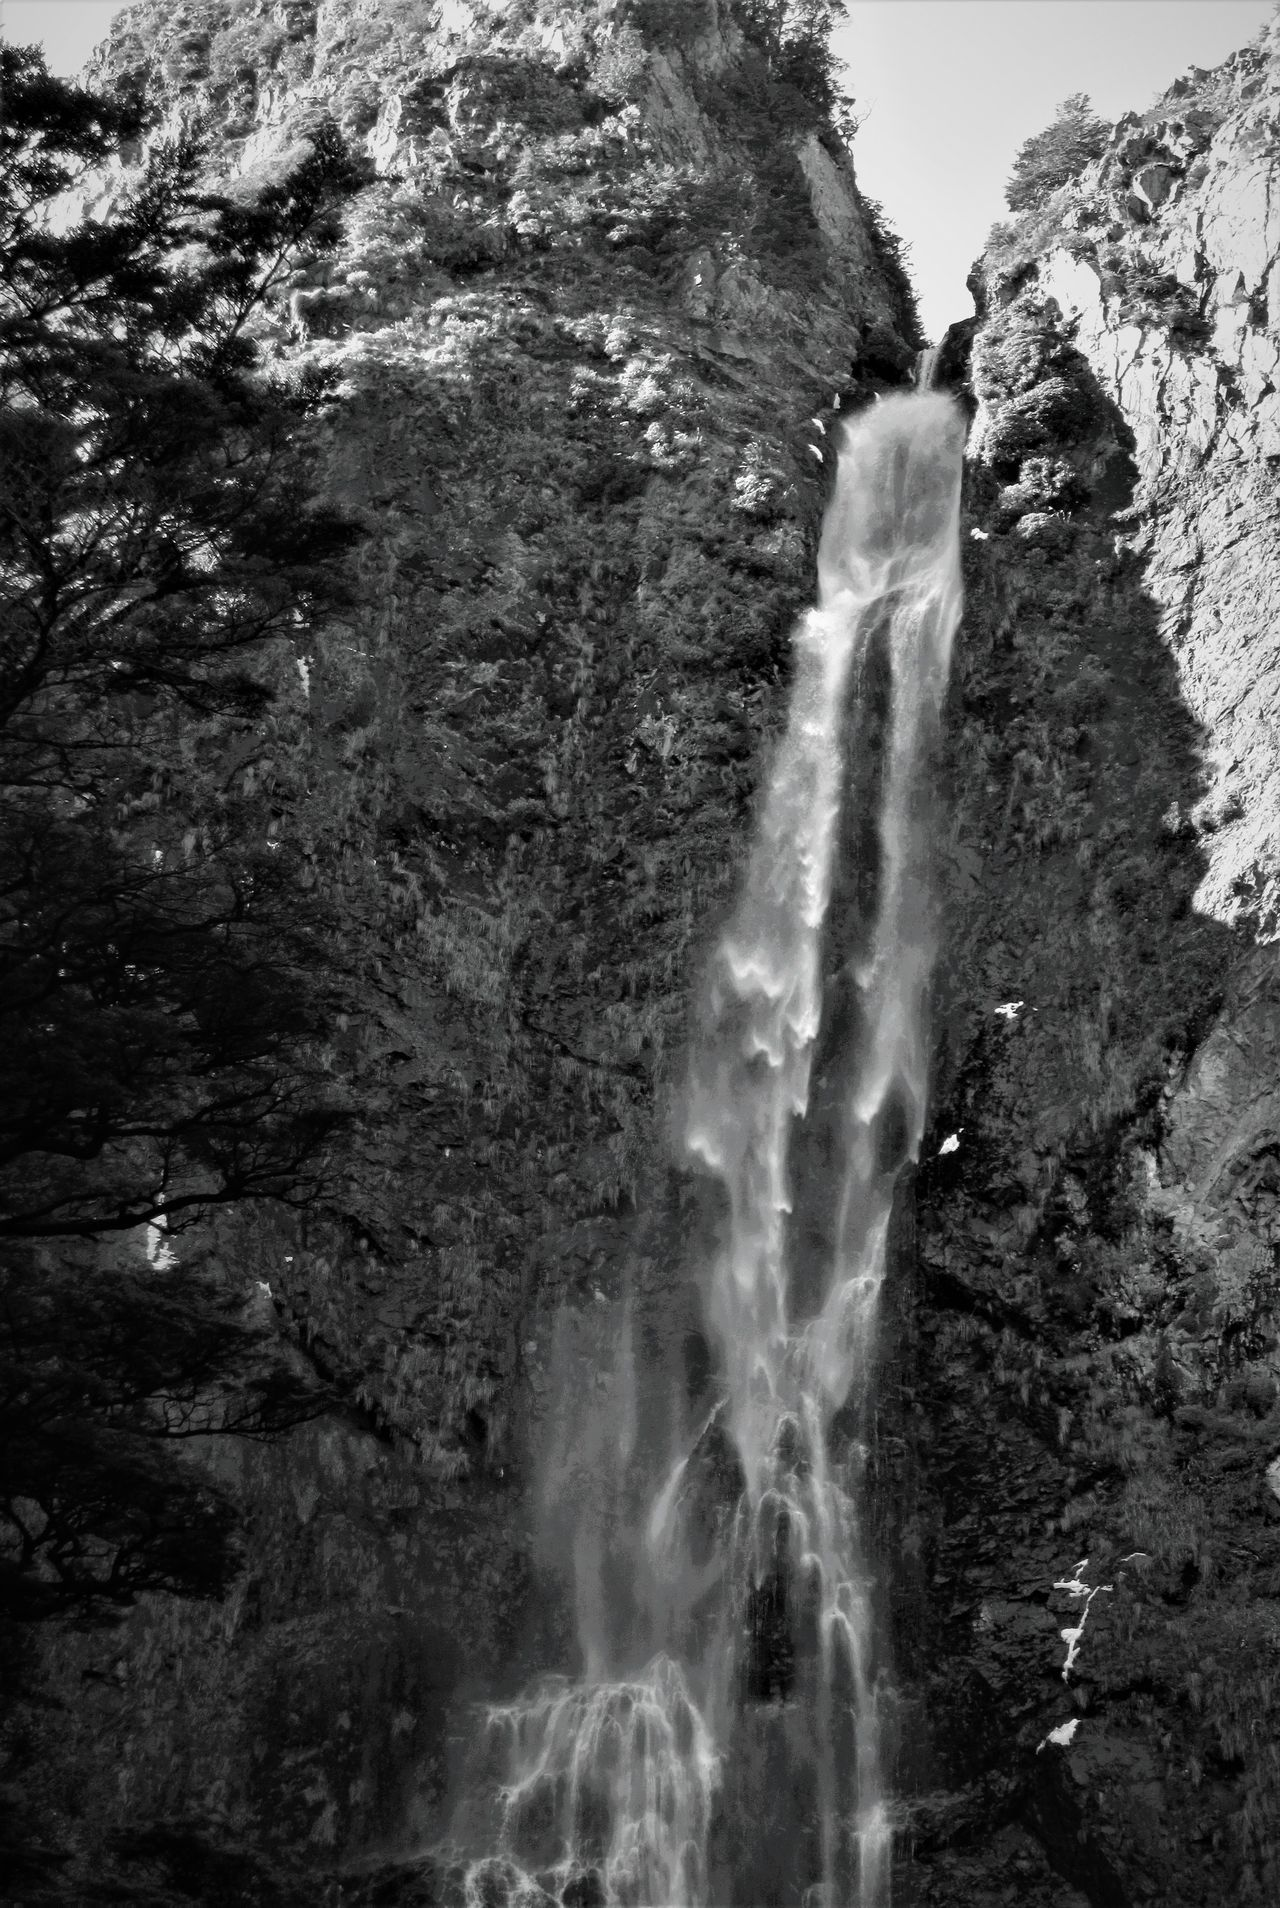 Devil's Punchbowl, Arthur's Pass (Black and White) Arthur's Pass Beauty In Nature Day Devils Punch Bowl Falls Flowing Flowing Water Motion Nature New Zealand New Zealand Beauty New Zealand Landscape New Zealand Scenery No People Outdoors Power In Nature Rock Rock - Object Rocks Rocks And Water Rocky Rocky Mountains Scenics Water Waterfall The Great Outdoors - 2017 EyeEm Awards